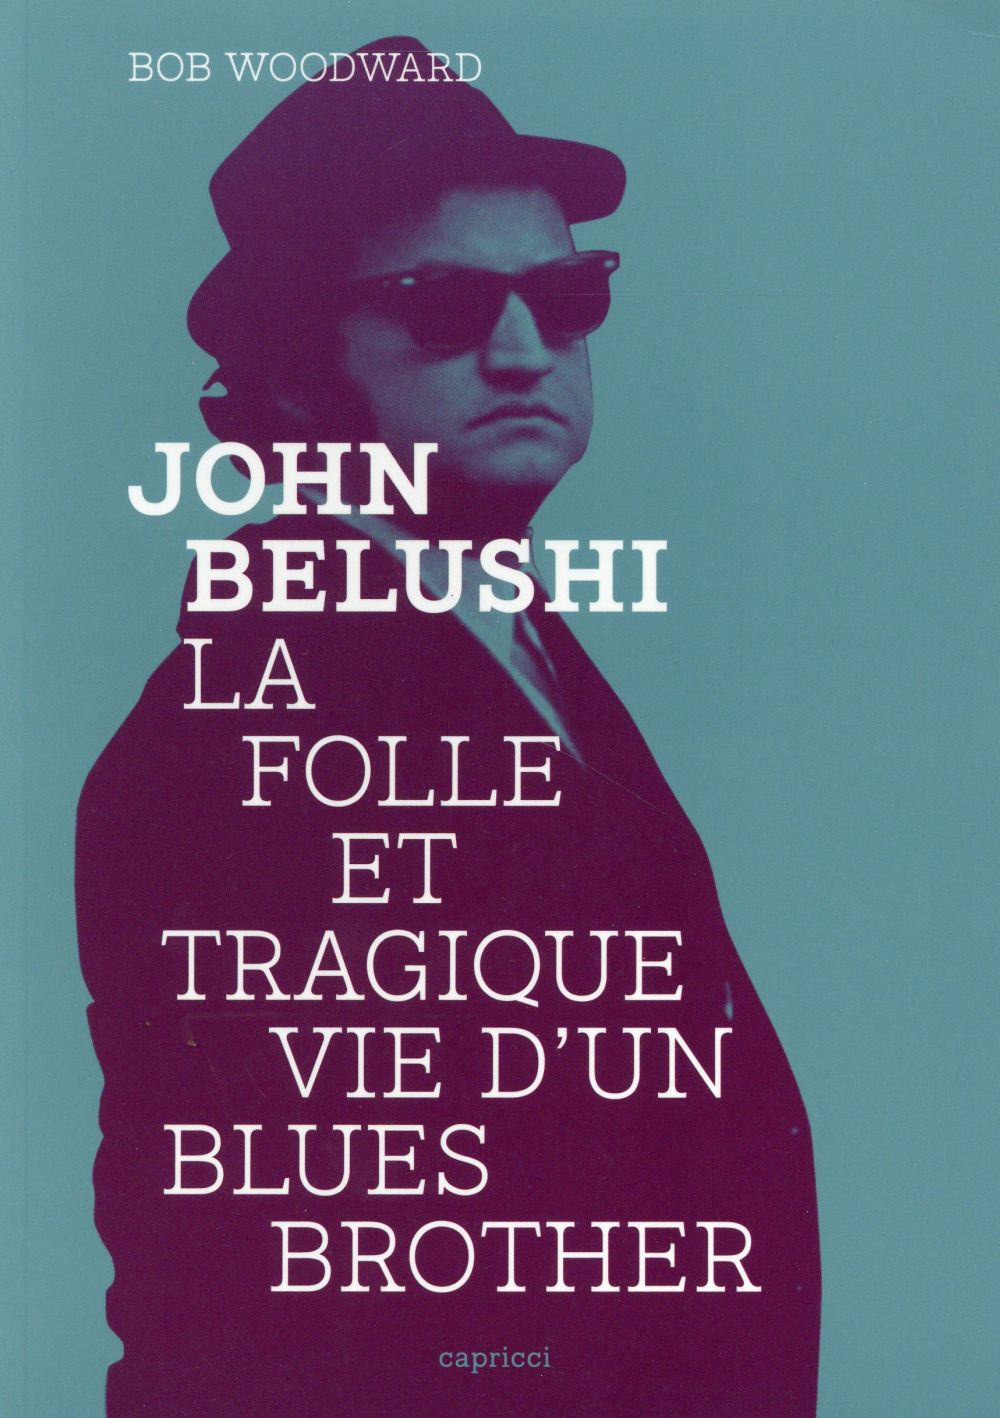 John belushi ; la folle et tragique vie d'un blues brother